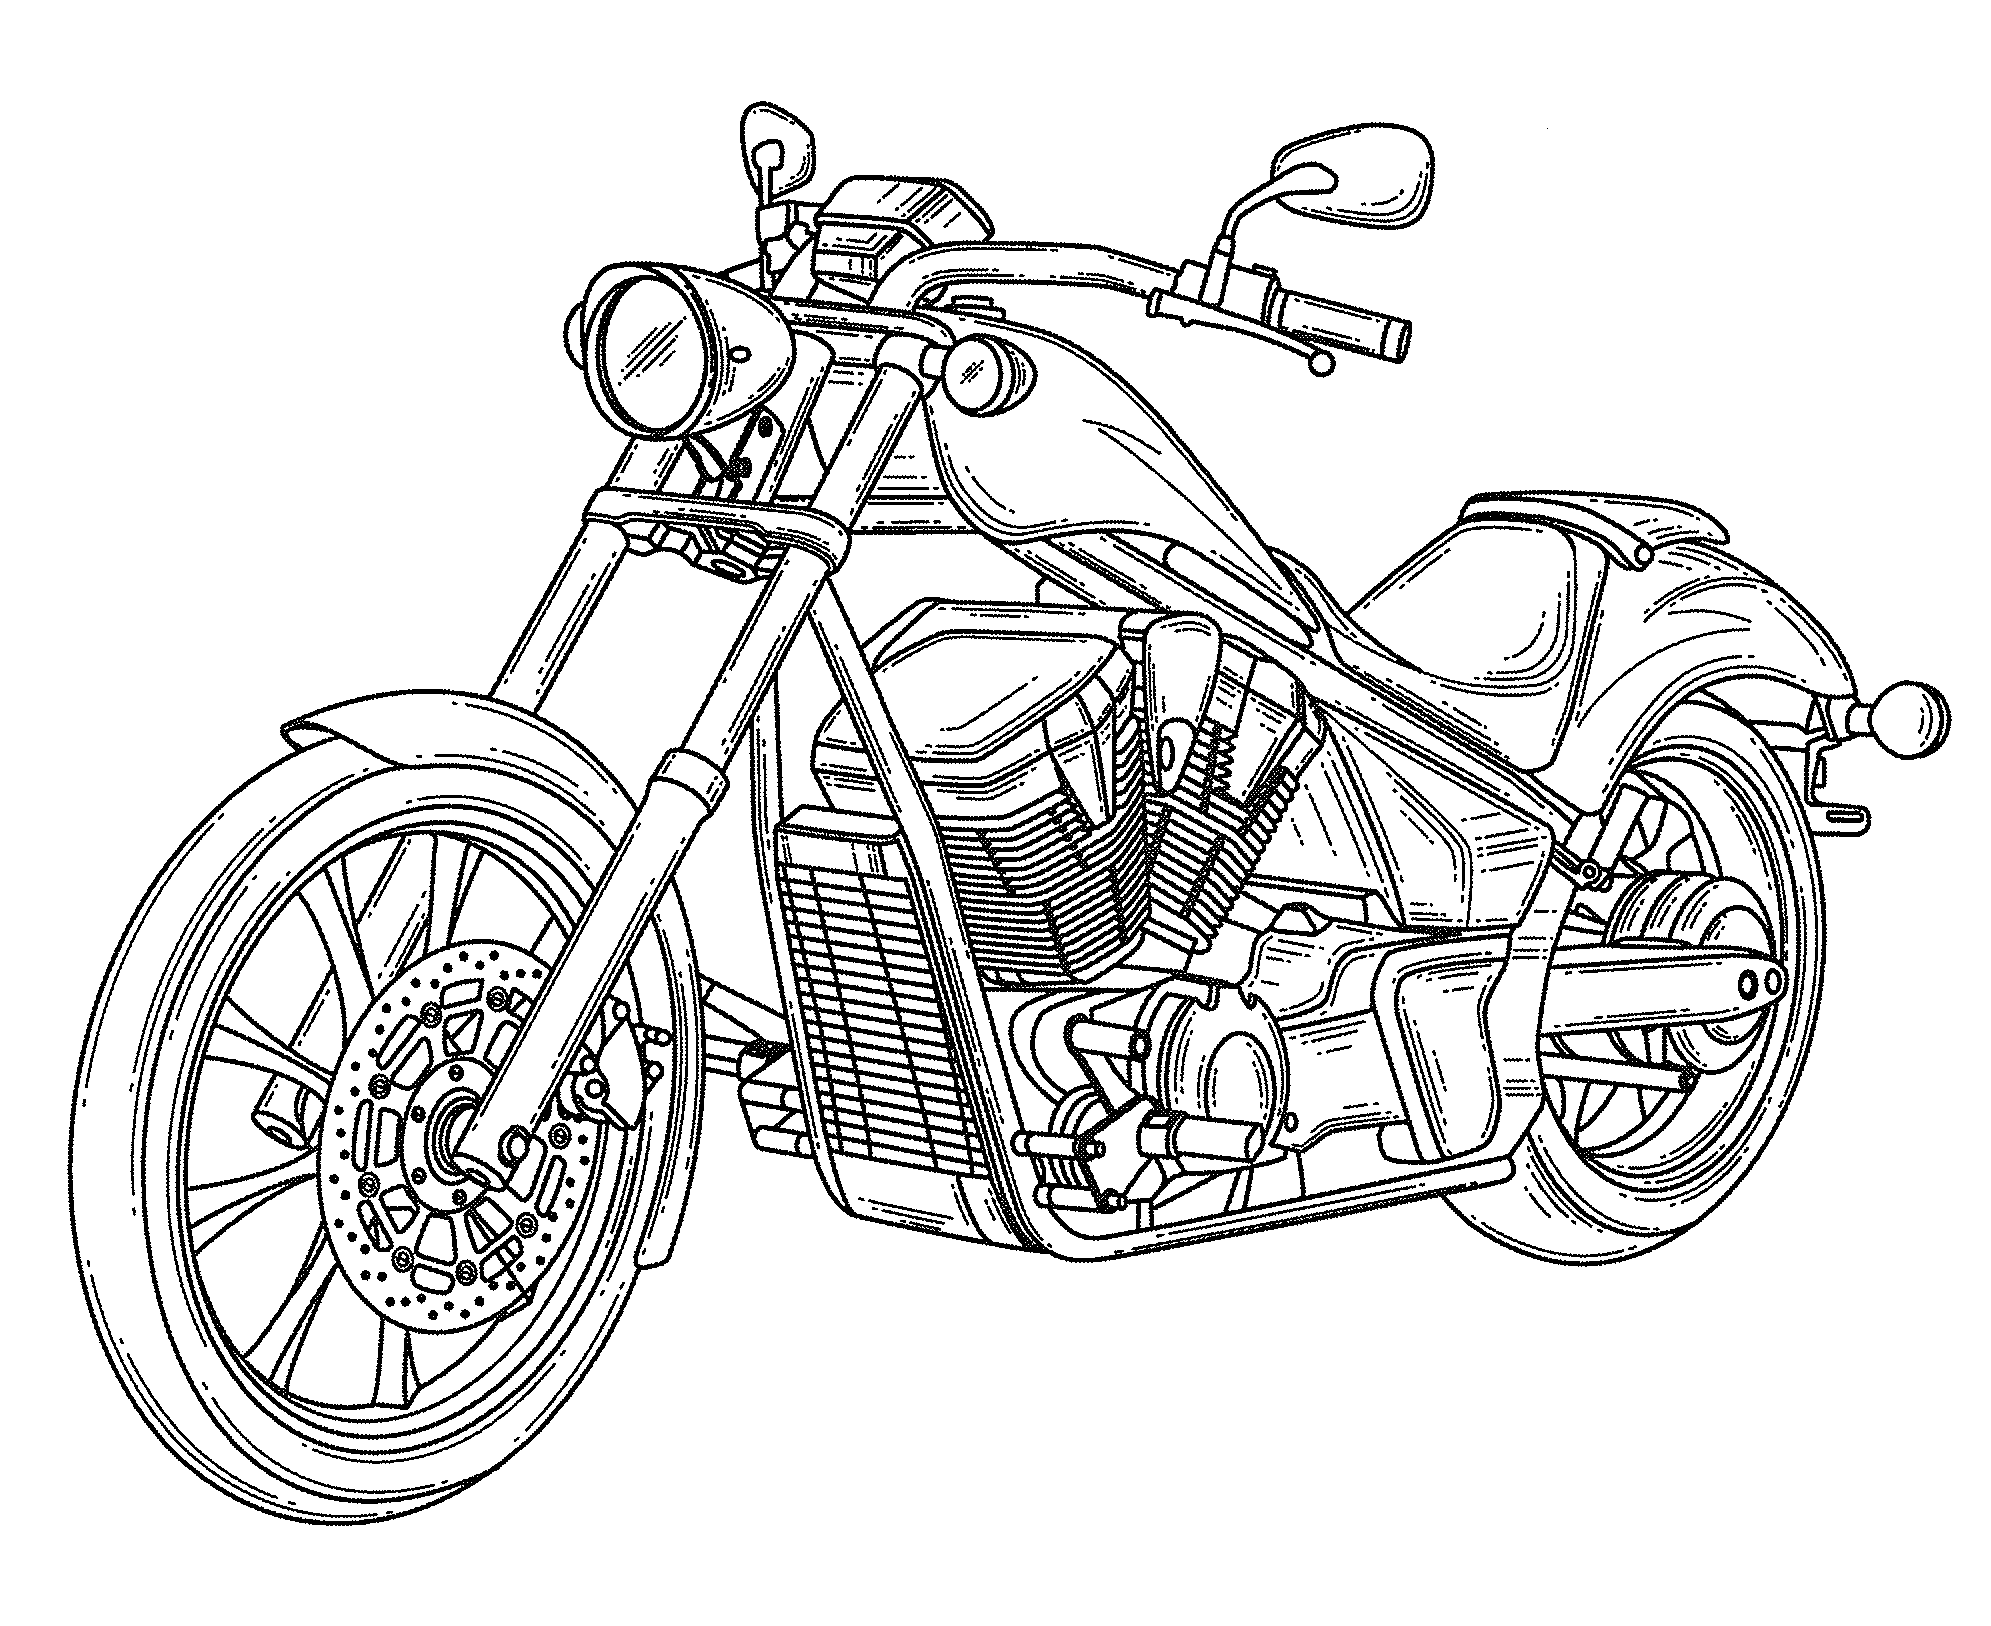 how to draw a motorcycle patent usd582319 motorcycle google patents a draw to motorcycle how